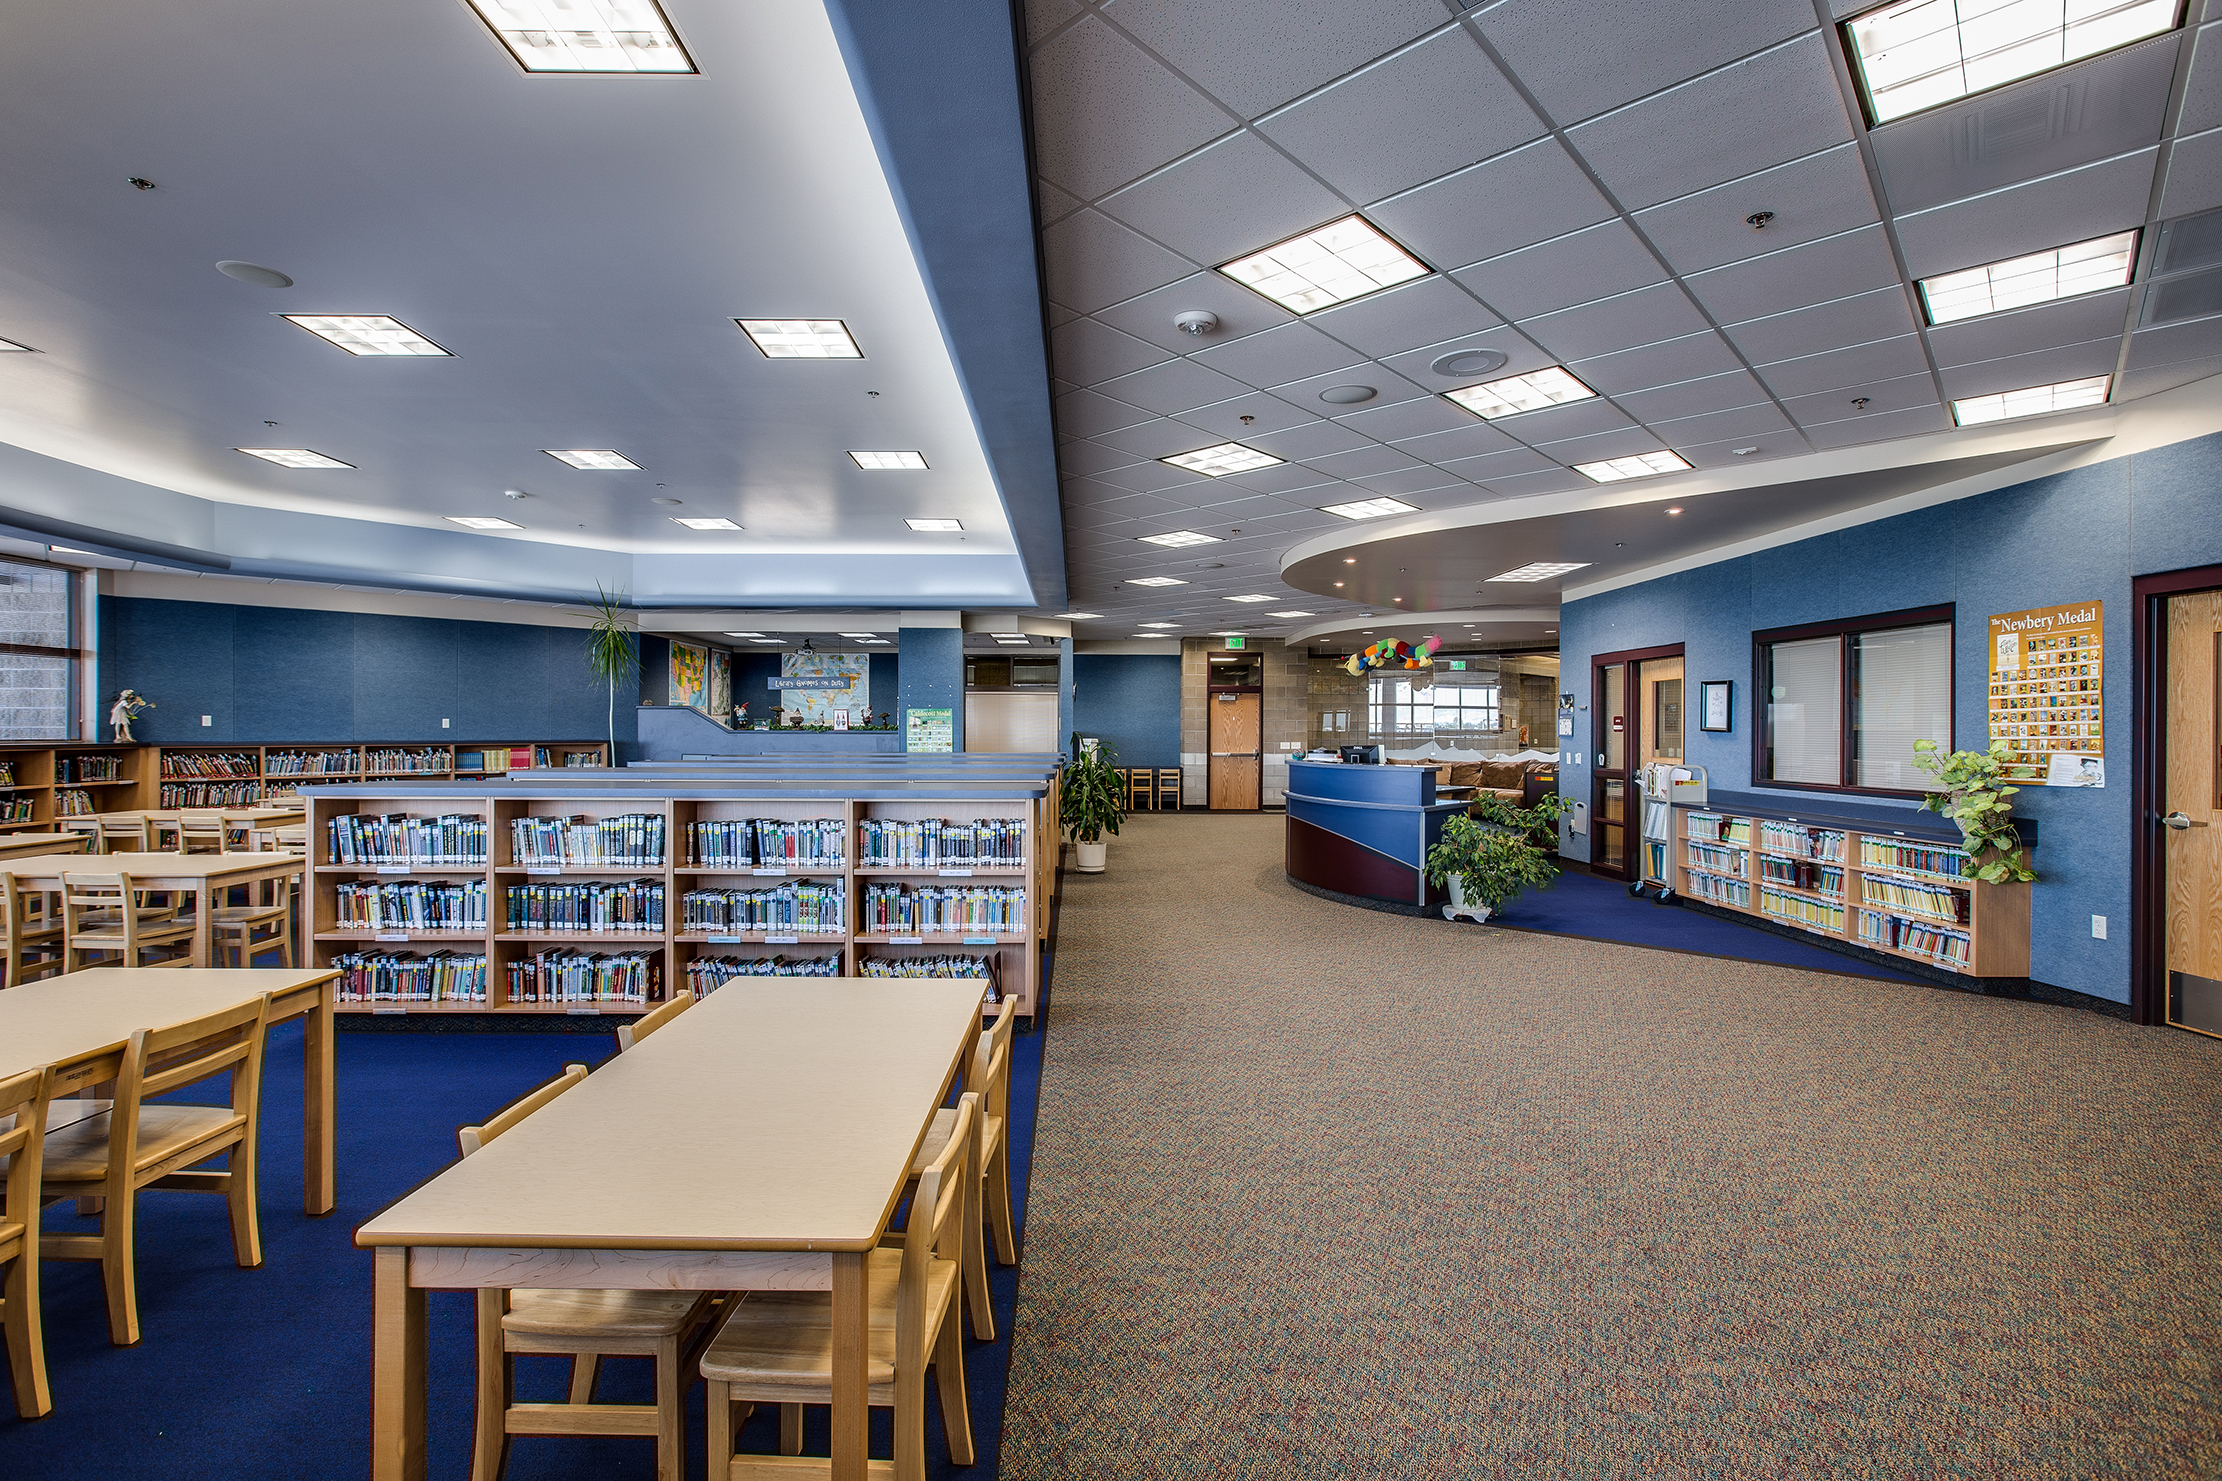 Birch Creek Elementary School Library - Smithfield, UT